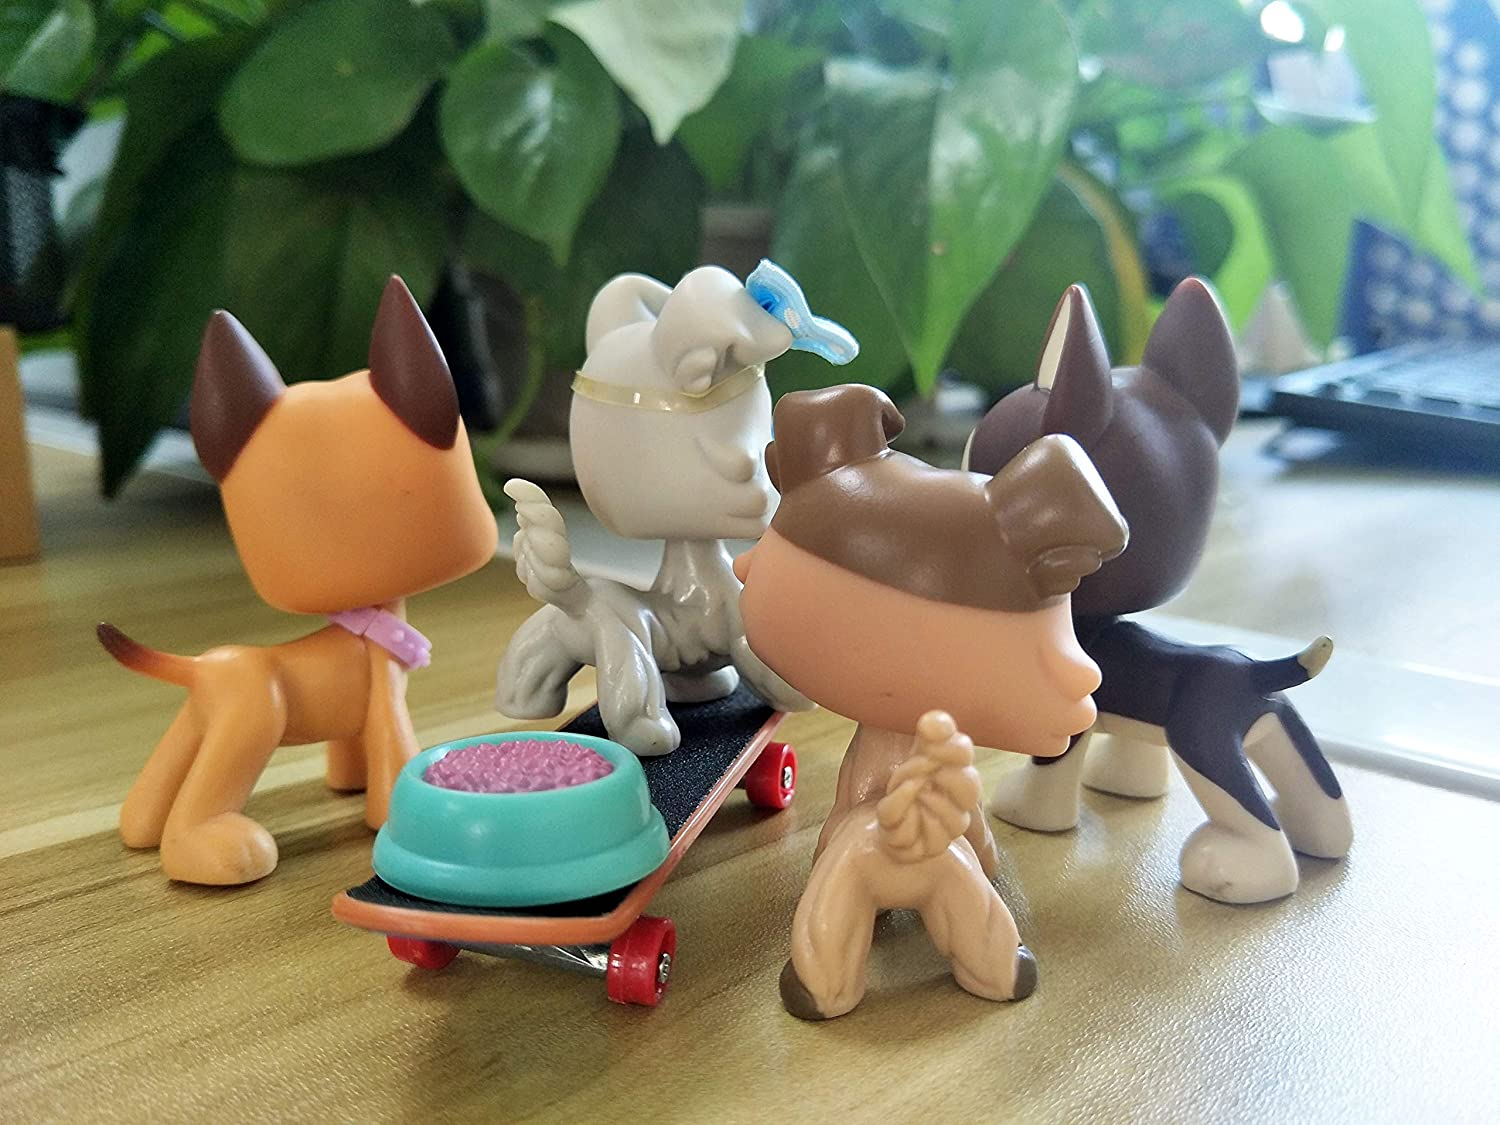 Emilys Doll lps Great Dane Dog #244#817 lps Collie #893#363 Brown and Tan Magnet Foot and Clear Peg with lps Accessories Stakeboard Lot Kids Figures